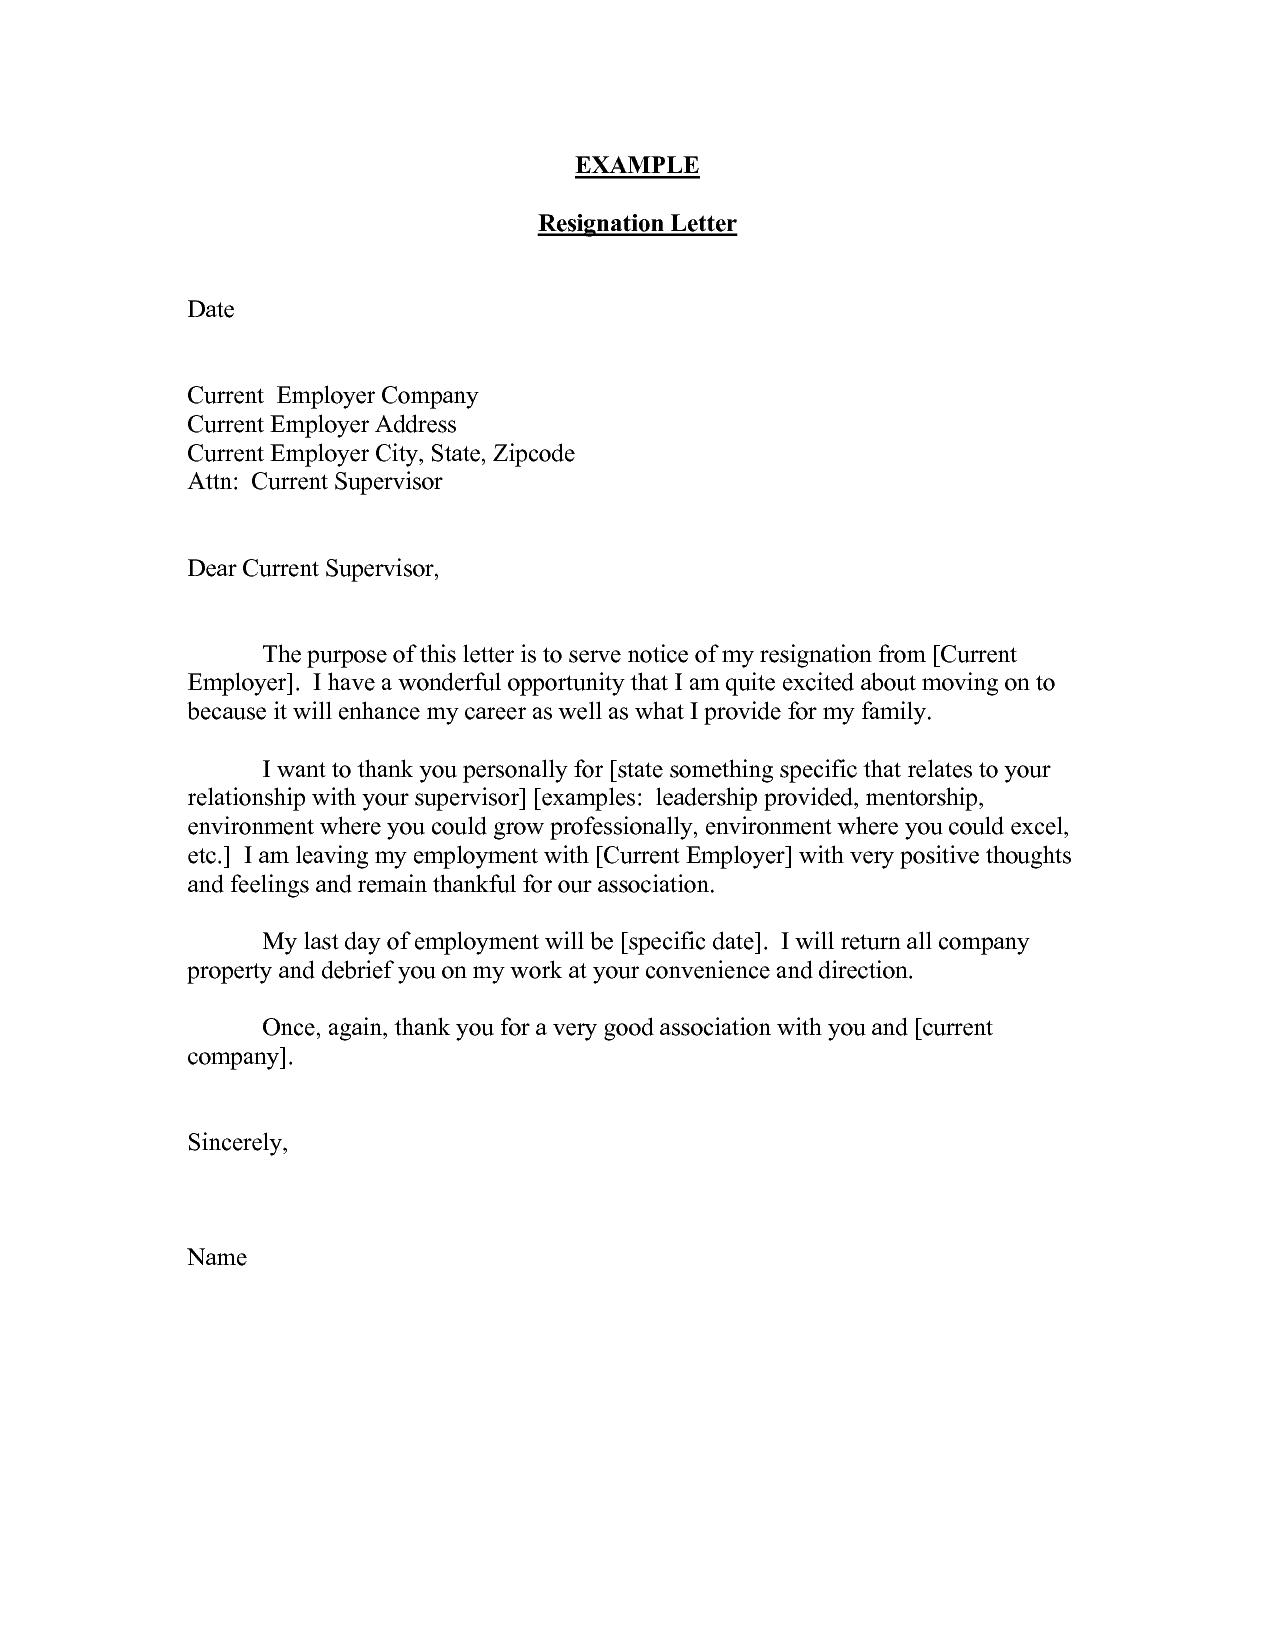 Resignation Example Letters Resignation Letter Sample Doc Resume And